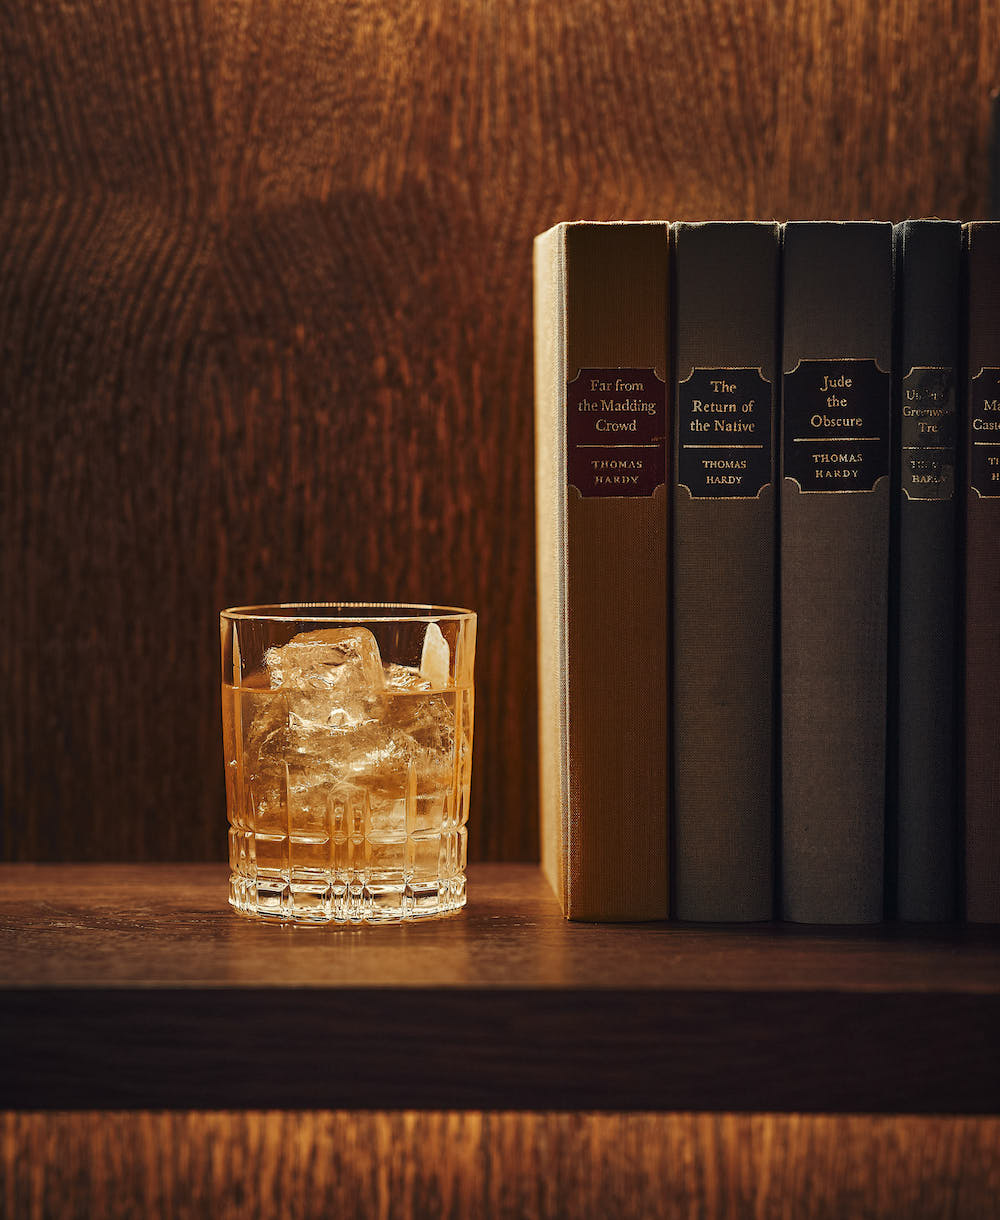 Image caption: Even the bar has links to fellows. Each cocktail has been named after – and in honour of – a fellow of Cambridge. | Image credit: The Fellows House